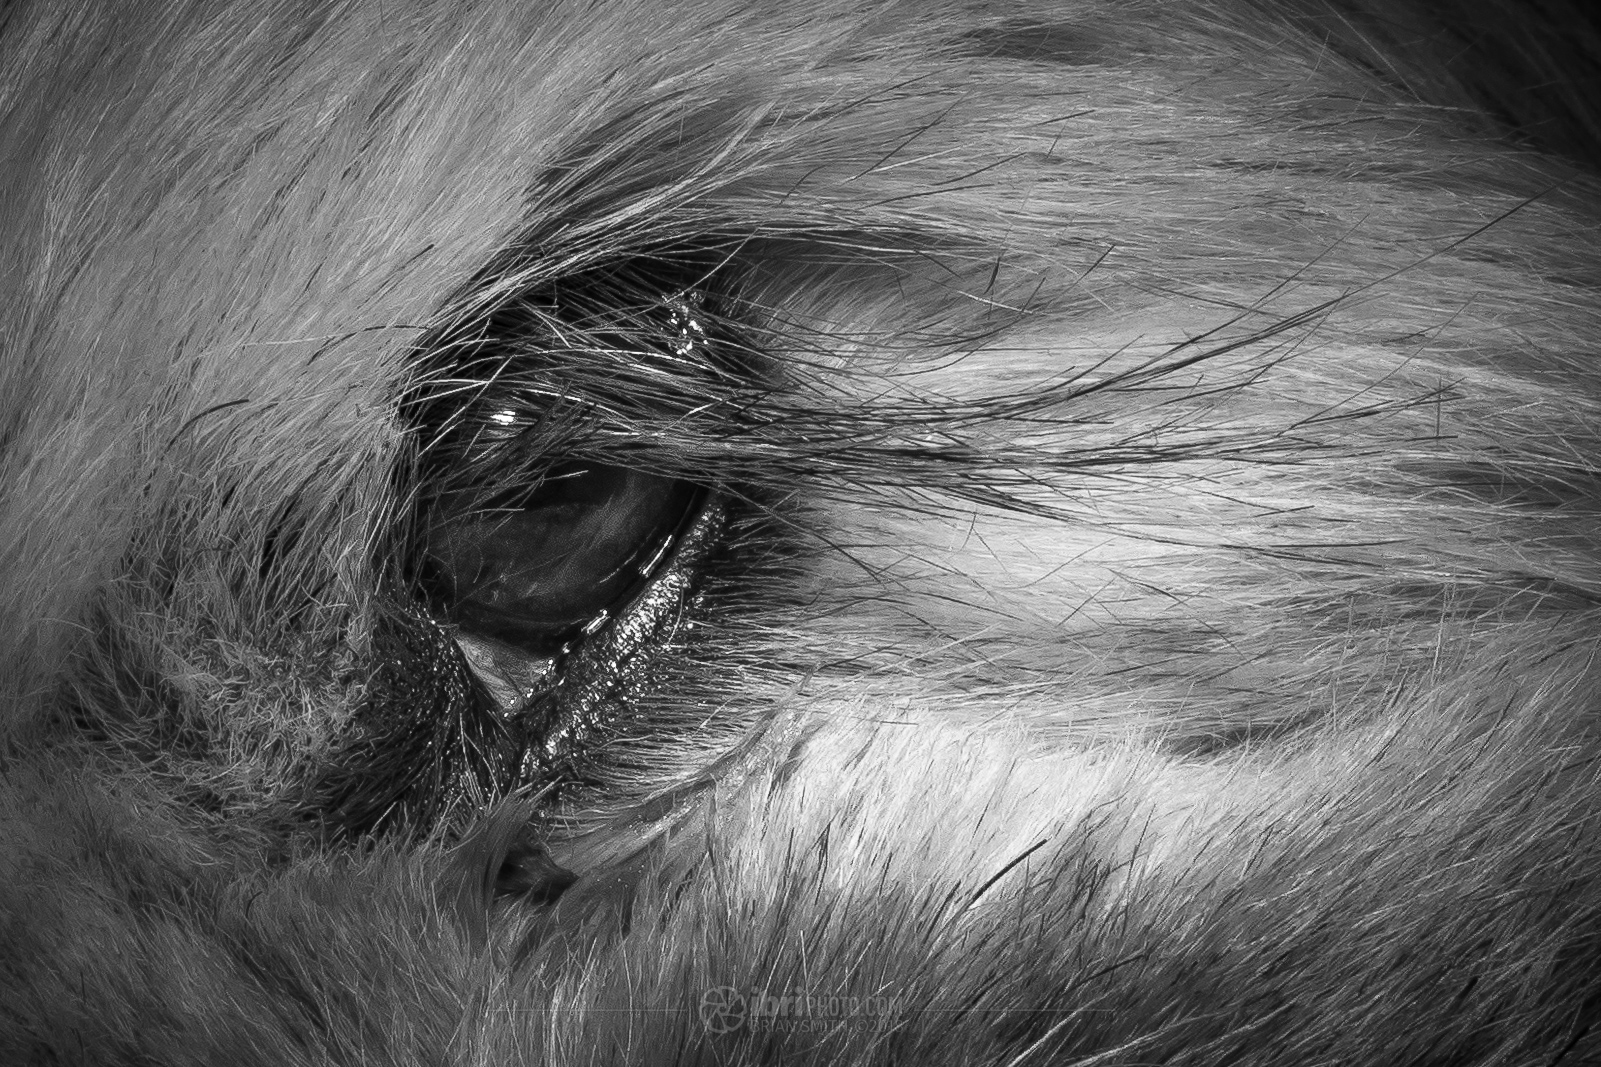 A close-up of Poppy's freakily long eyelash, showing how much detail this lens captures. Click for full screen...